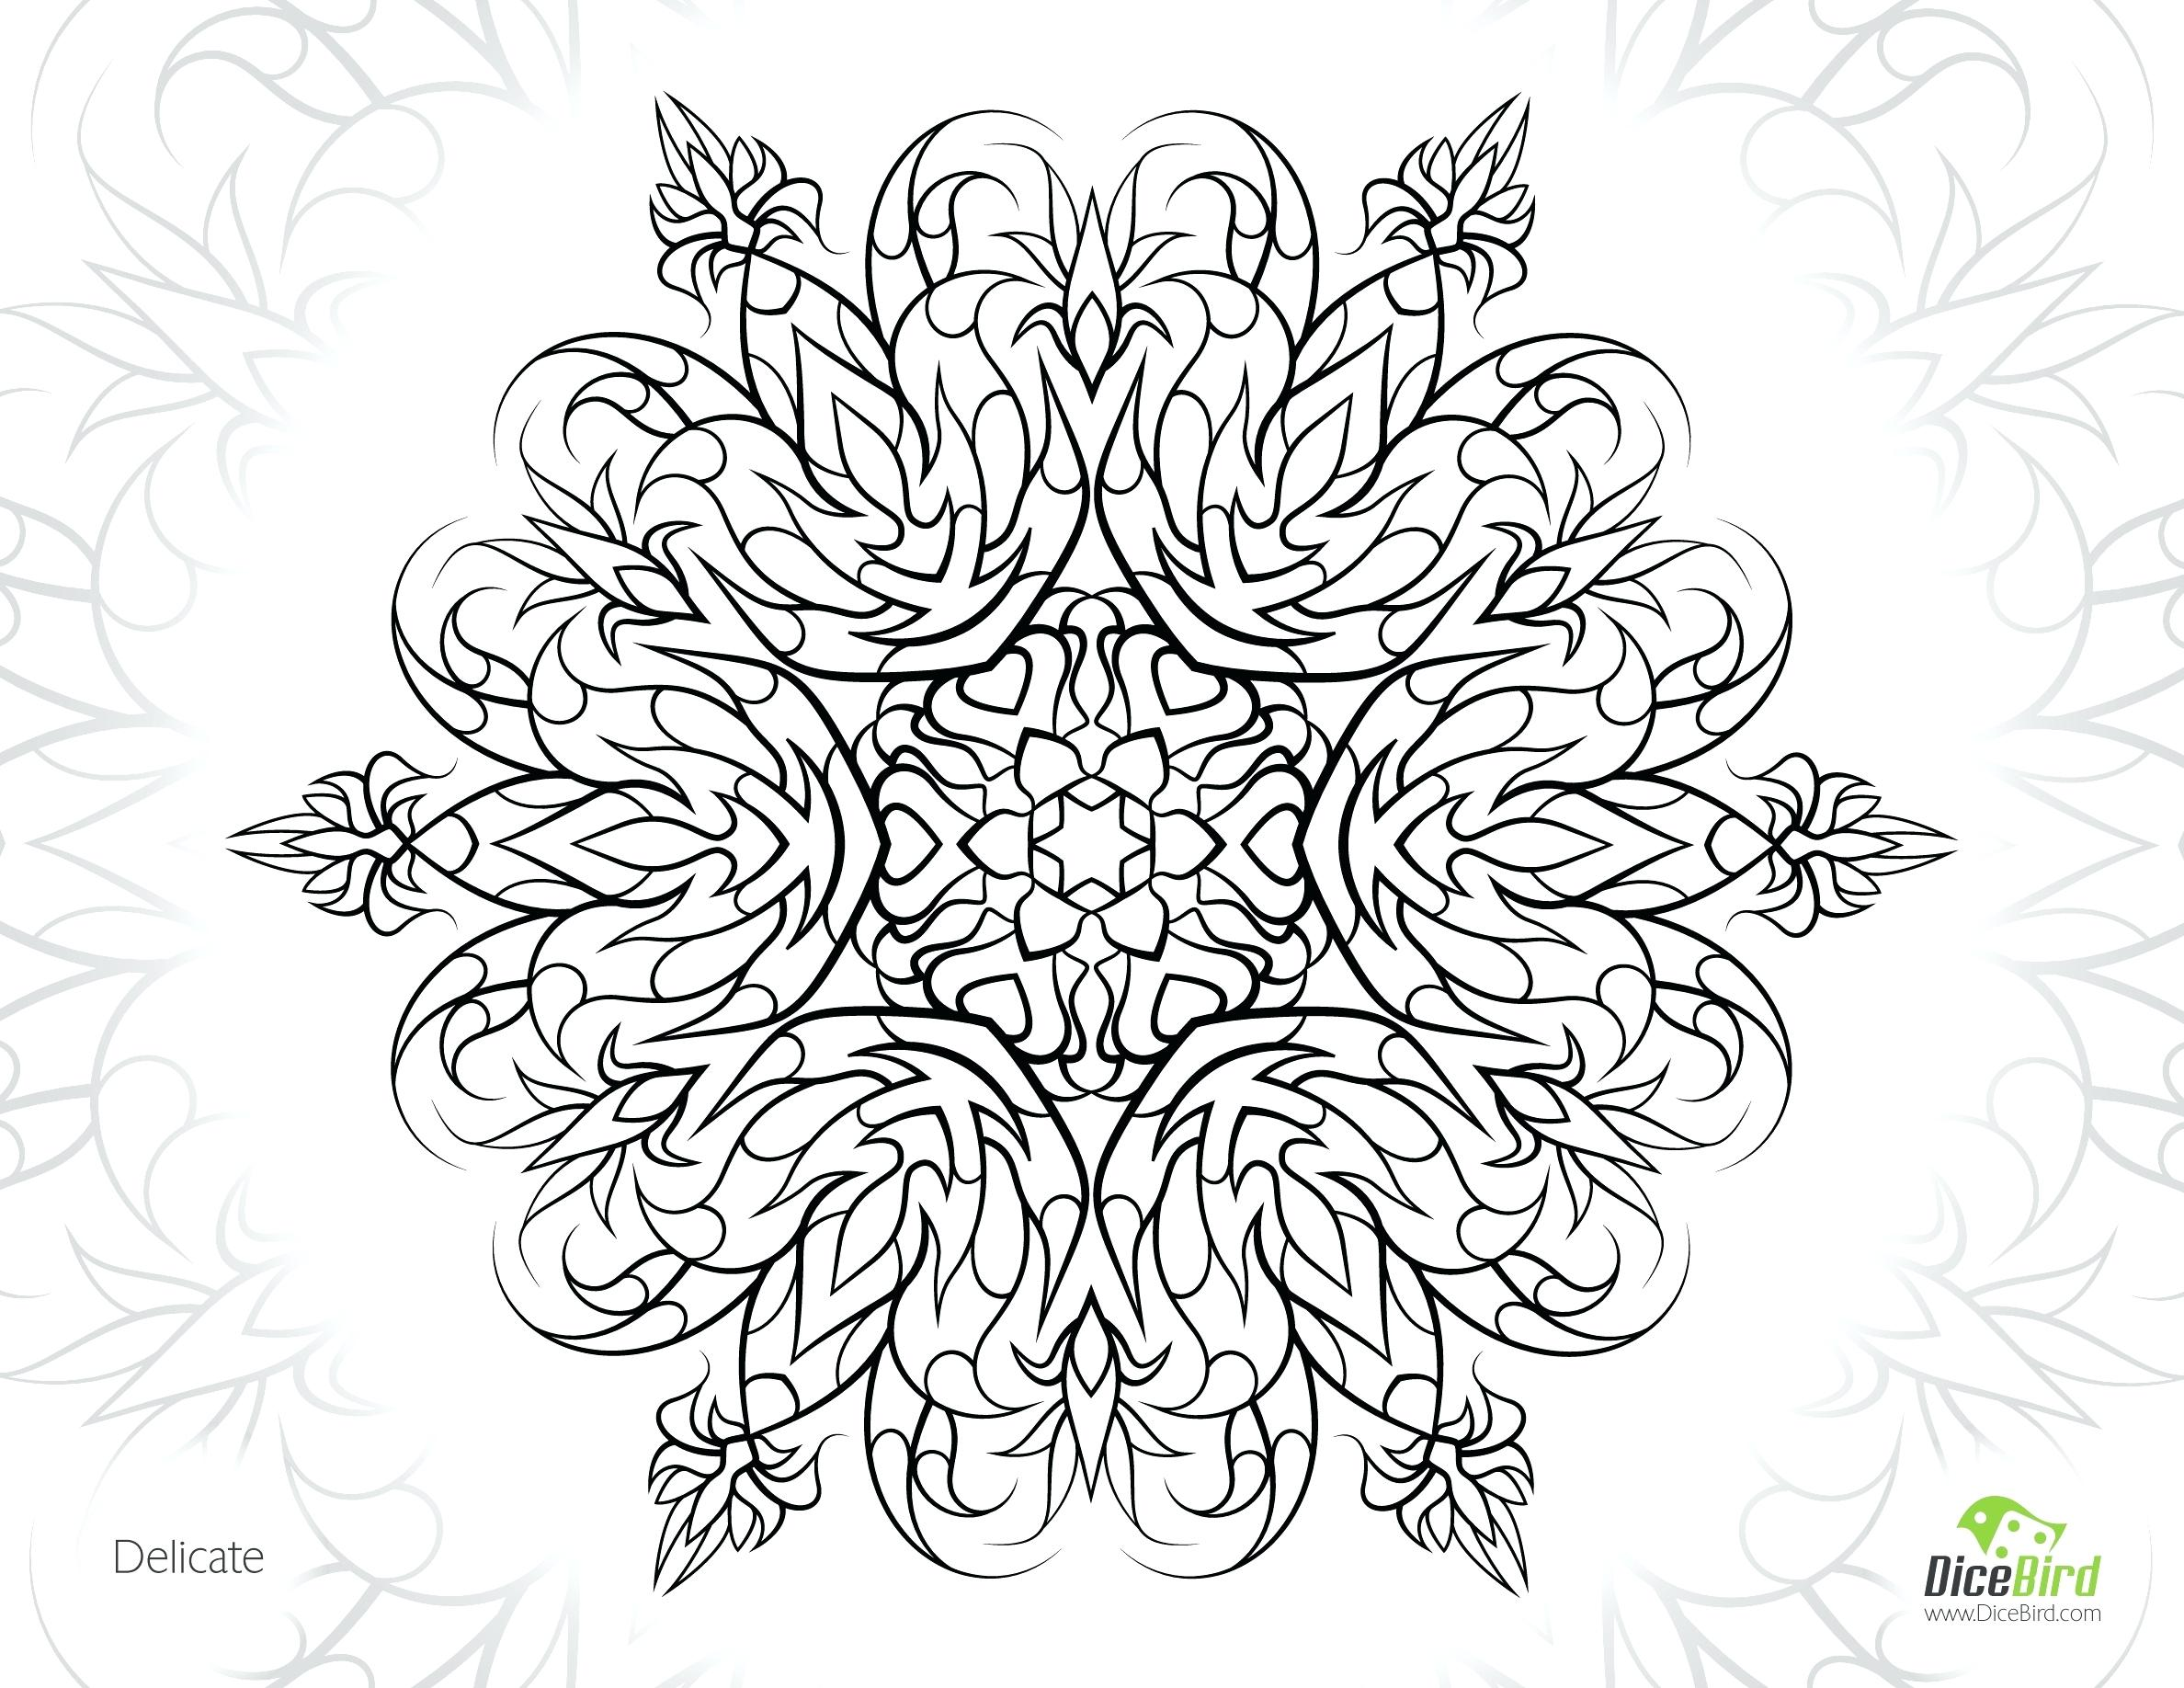 2376x1836 Free Adult Coloring Pages Printable Page A Kids Online Delicate